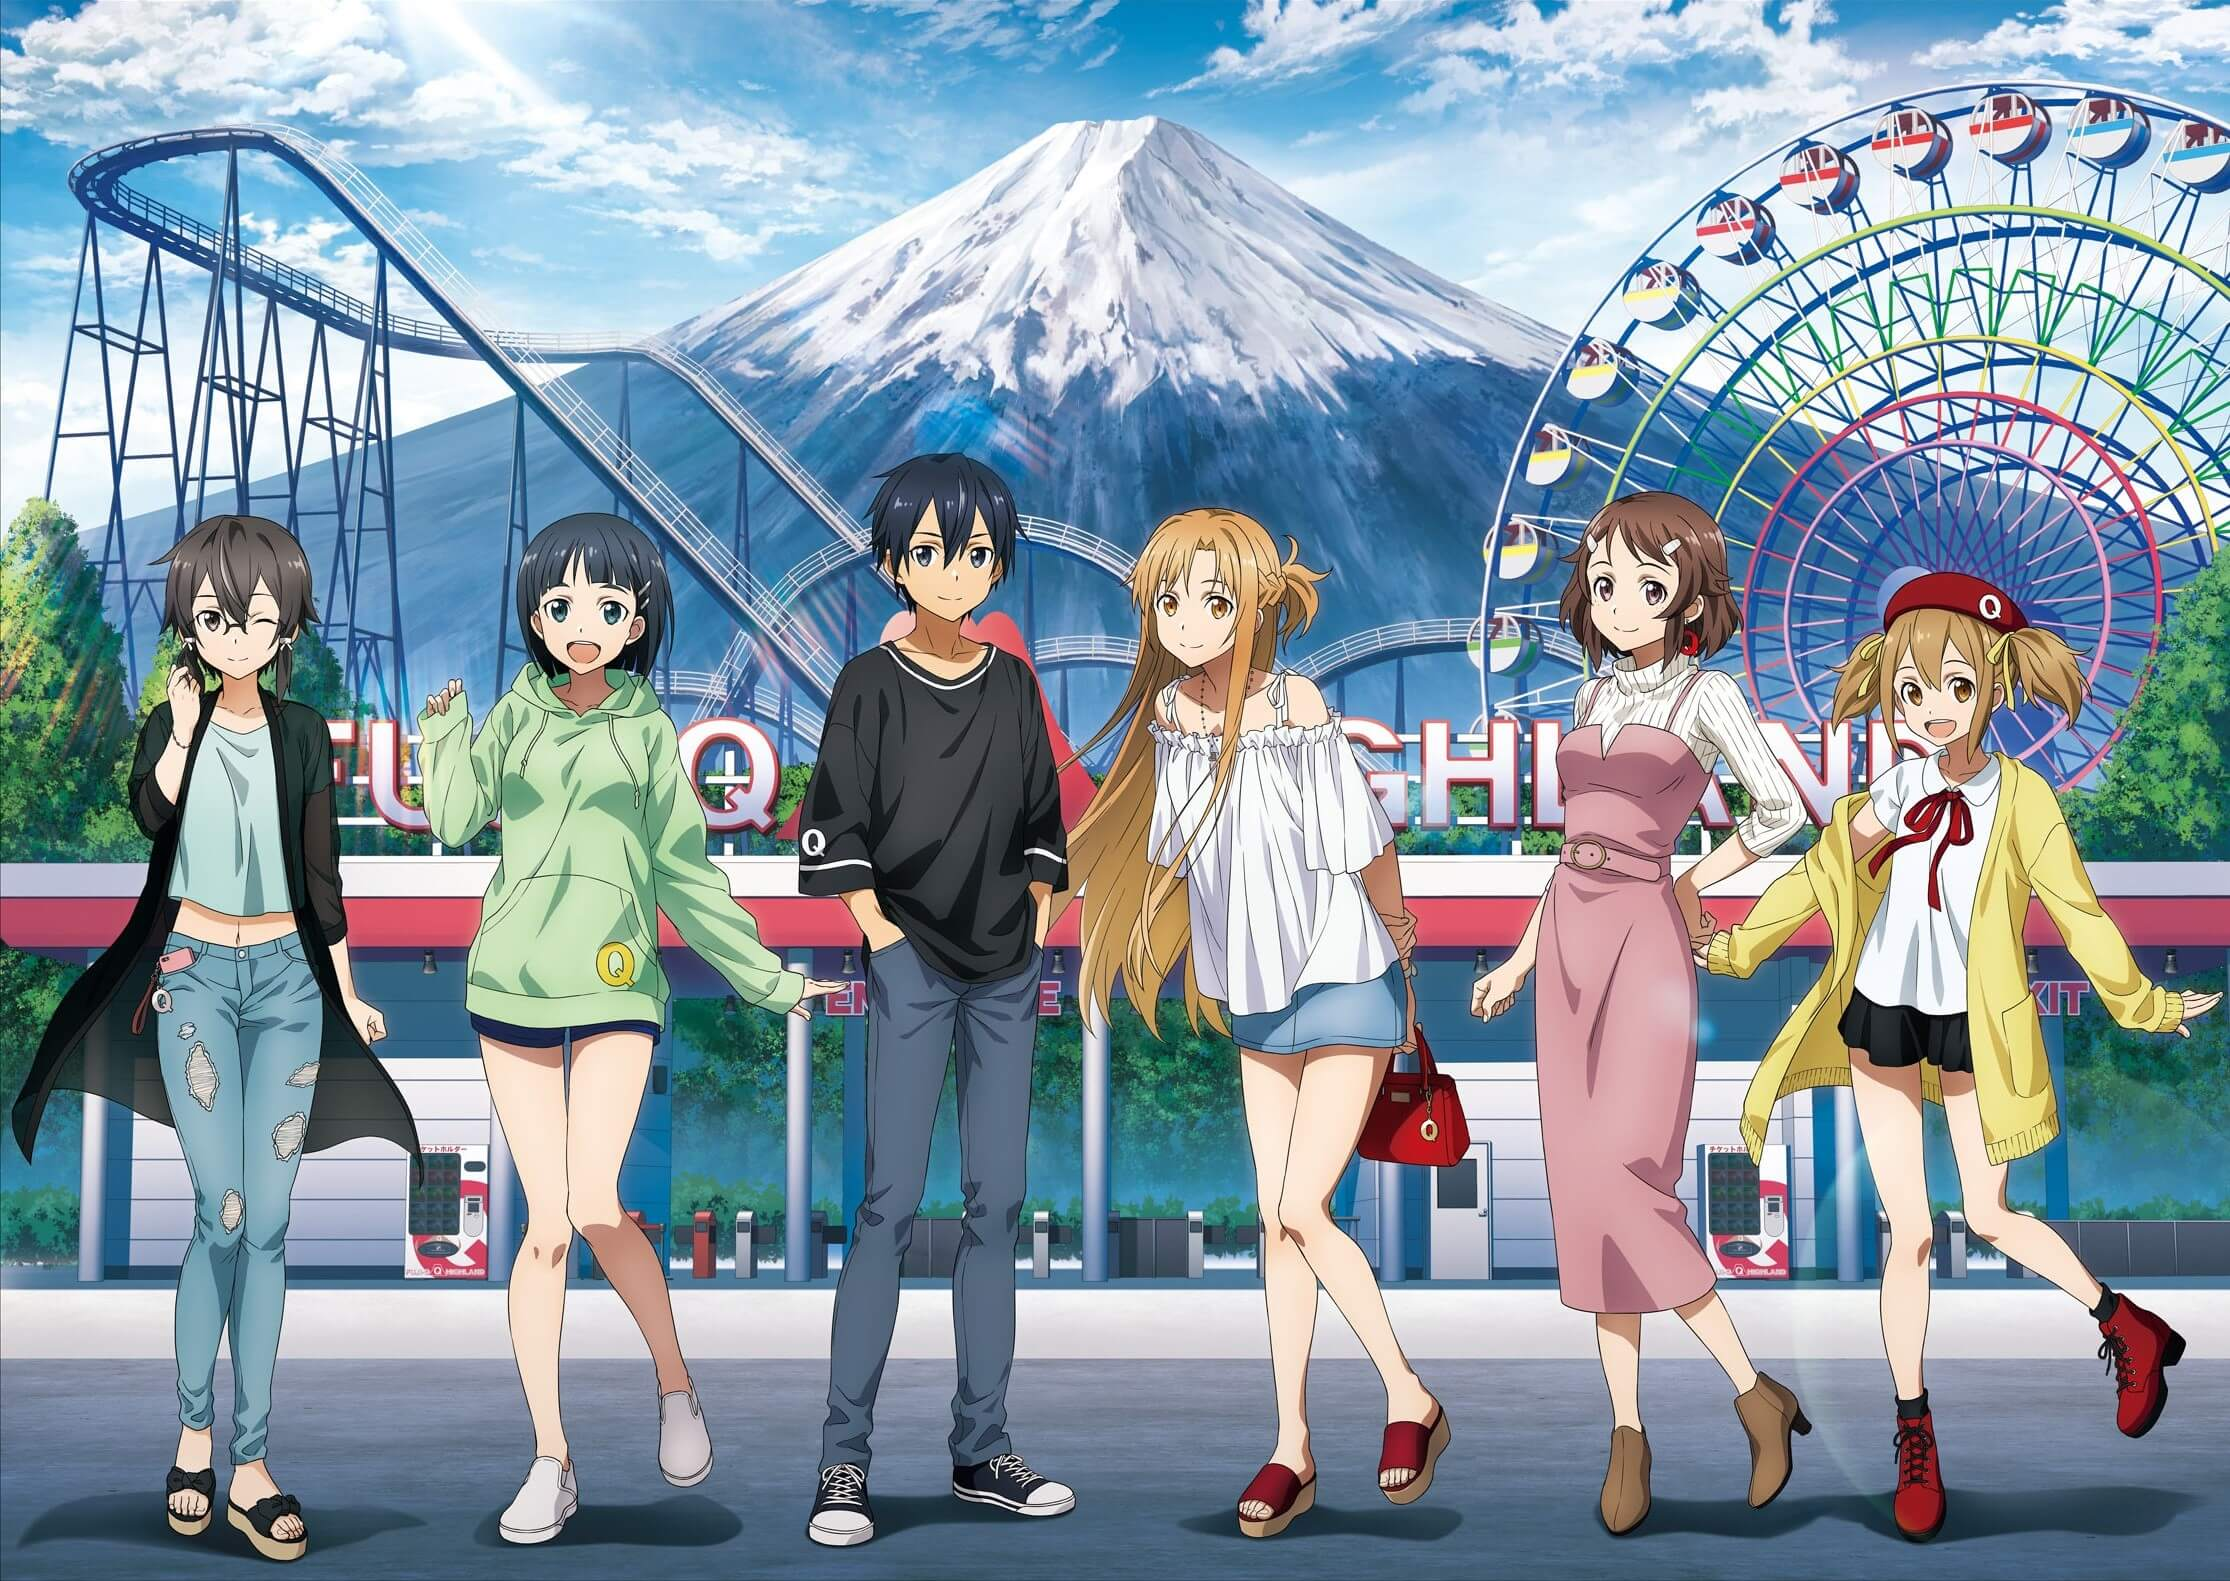 Sword Art Online: Alicization Collaborates With Fuji-Q Highland